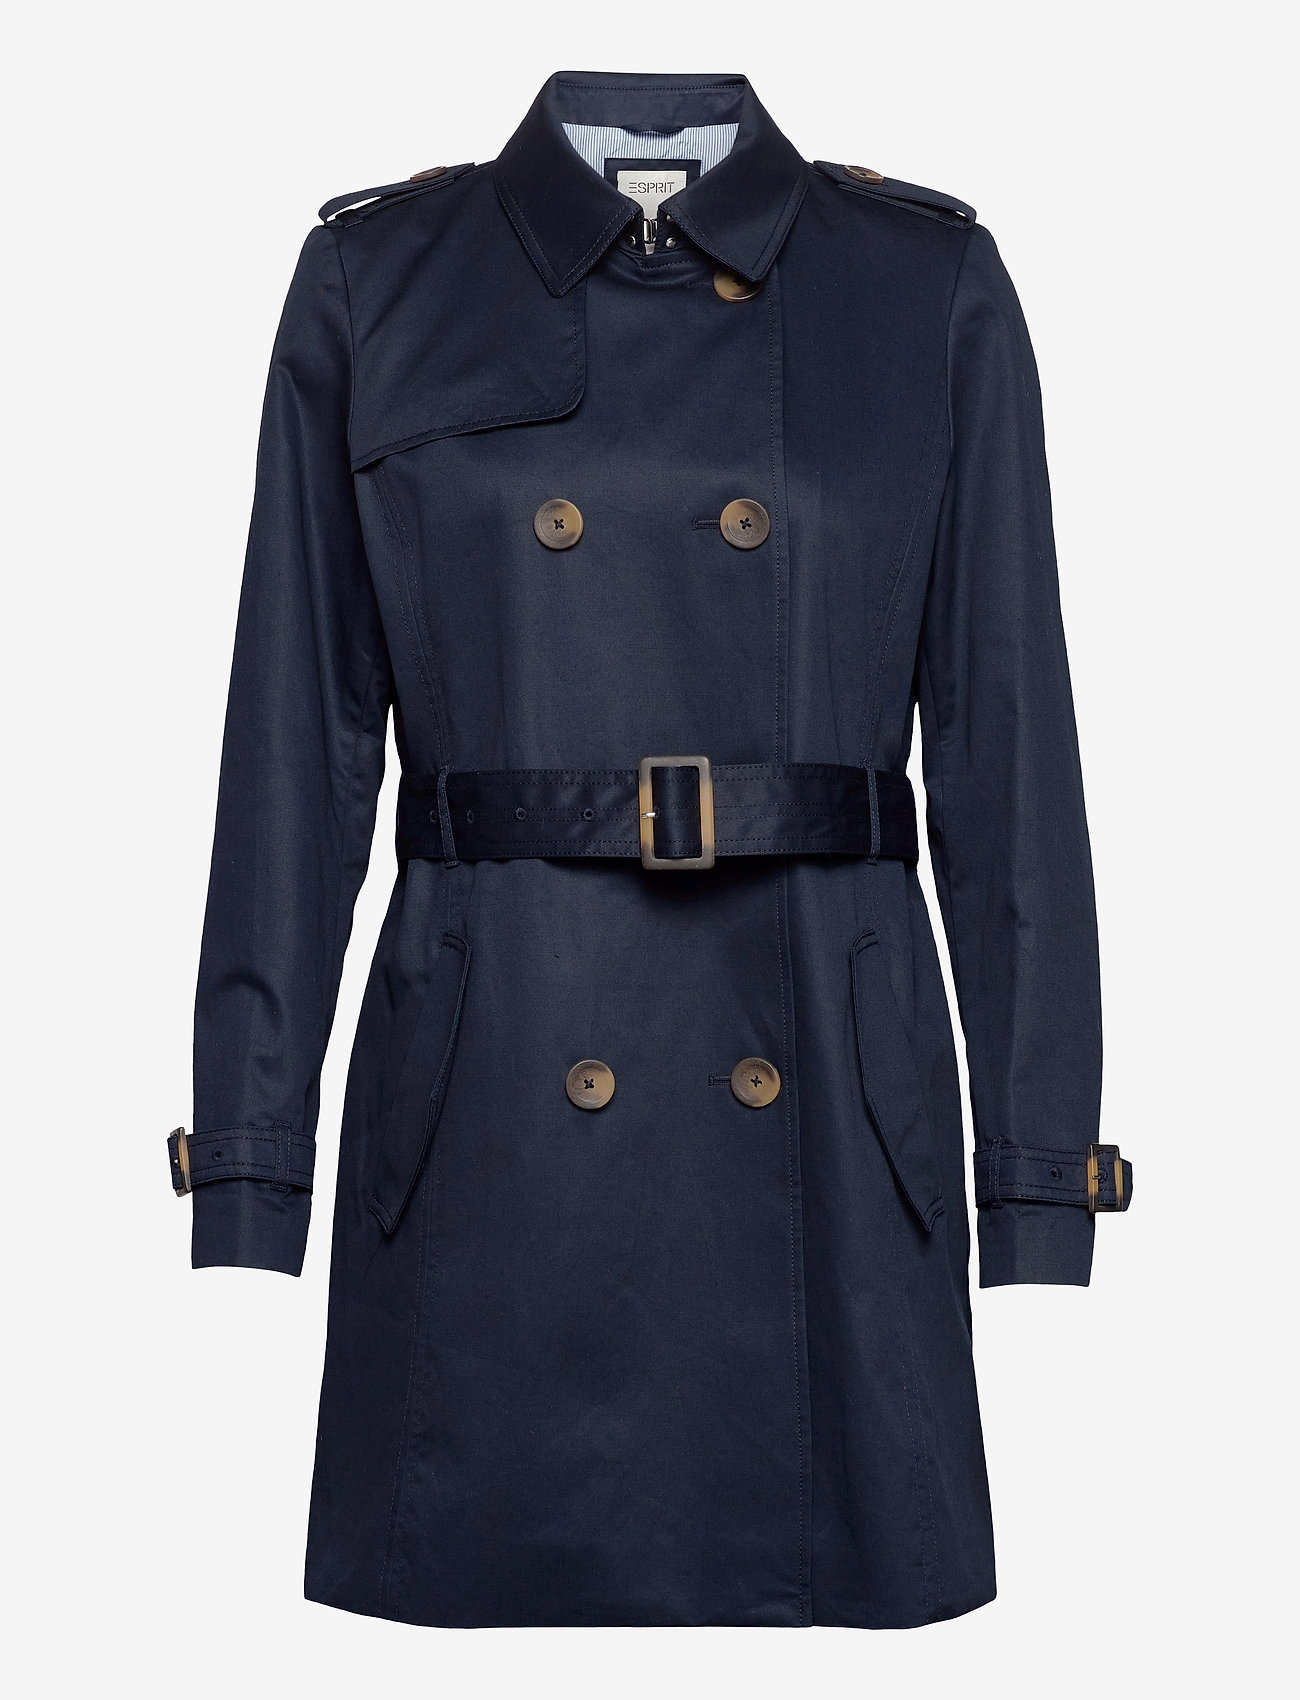 Esprit Casual - Coats woven - trenchs - navy - 0